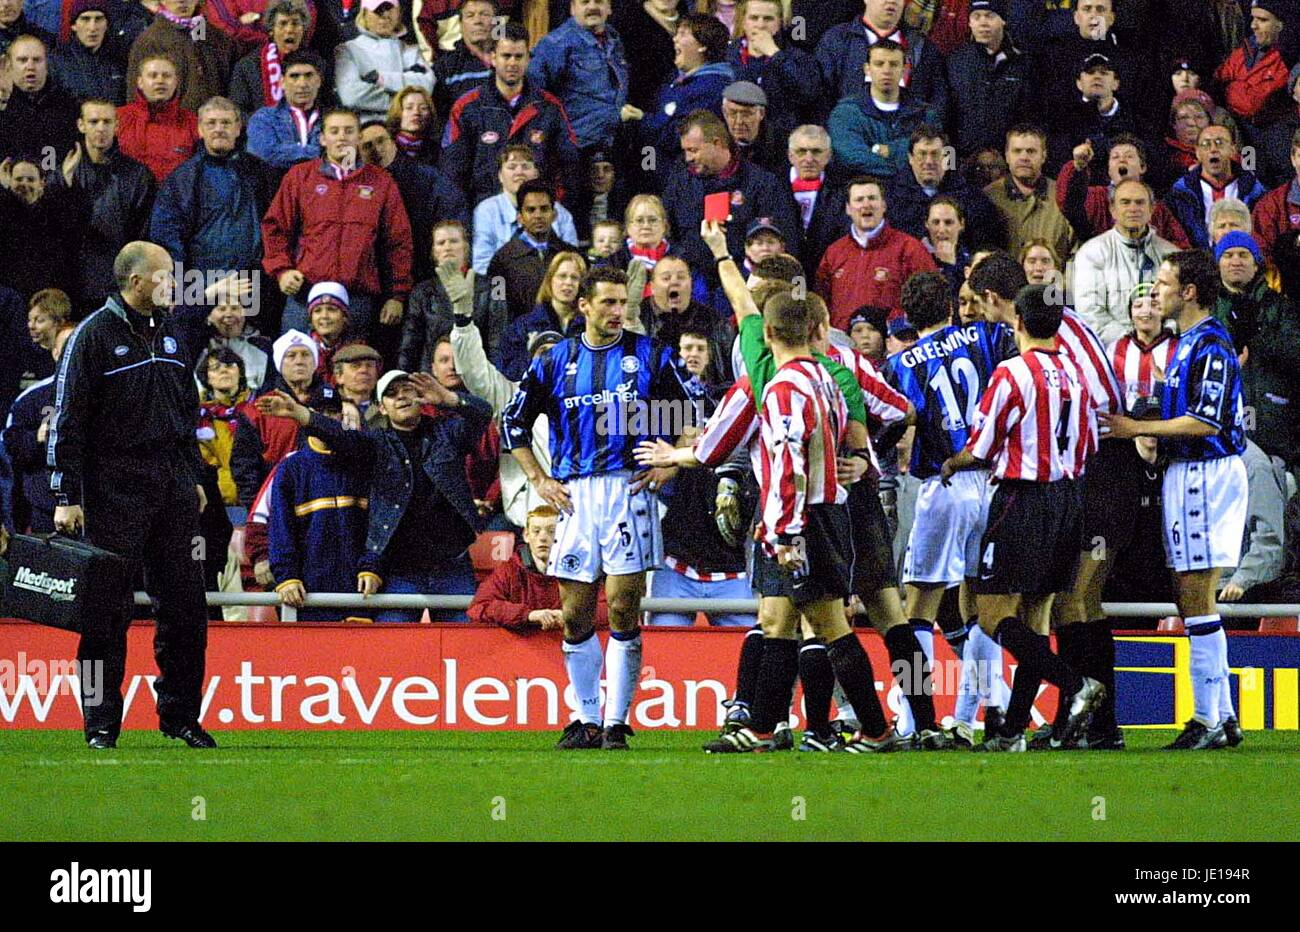 GIANLUCA FESTA IS SENT OFF SUNDERLAND V MIDDLESBROUGH STADIUM OF LIGHT SUNDERLAND 29 January 2002 - Stock Image